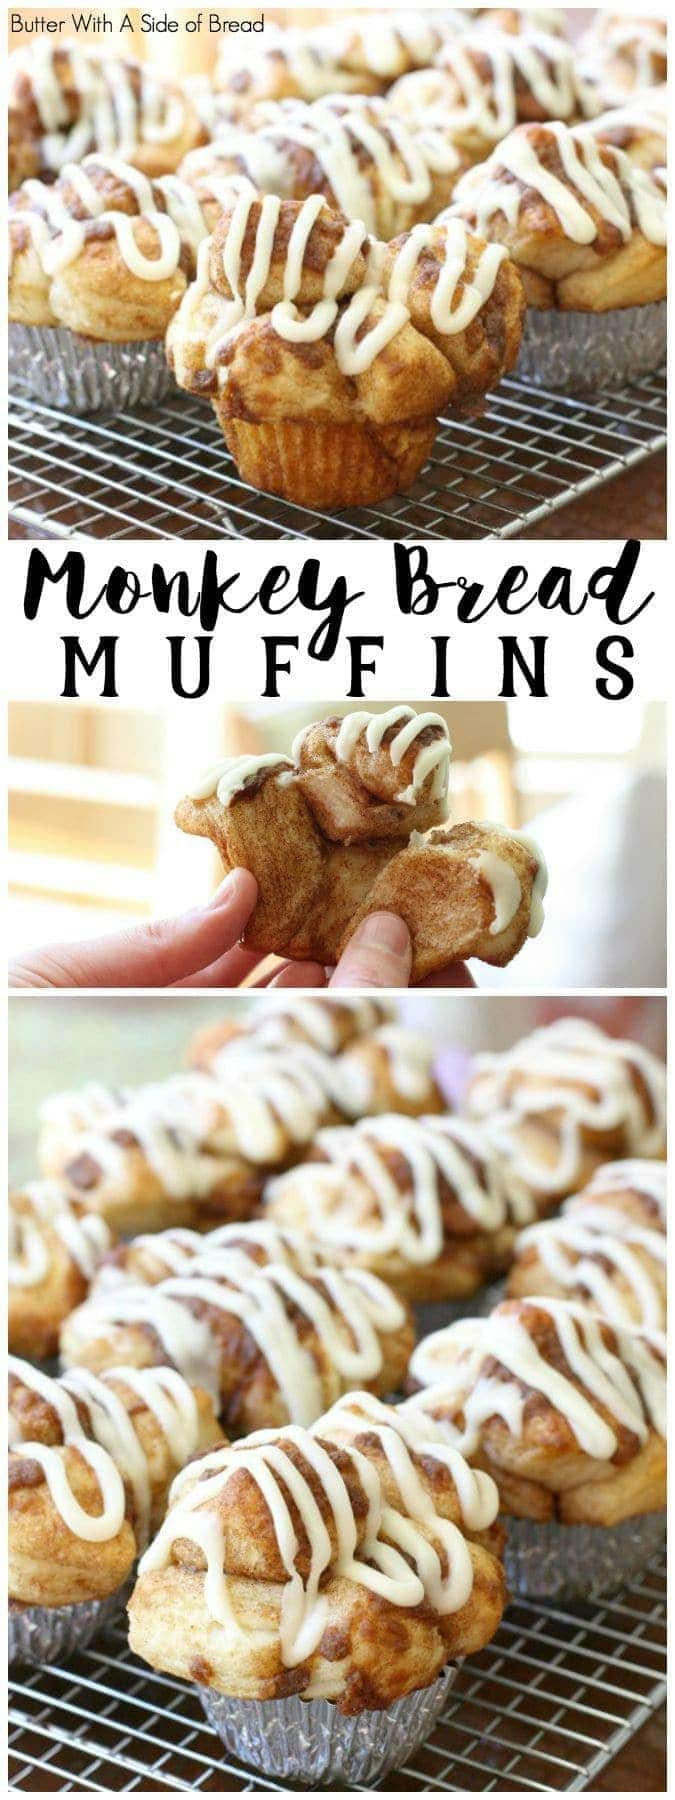 Monkey Bread Muffins - Butter With A Side of Bread